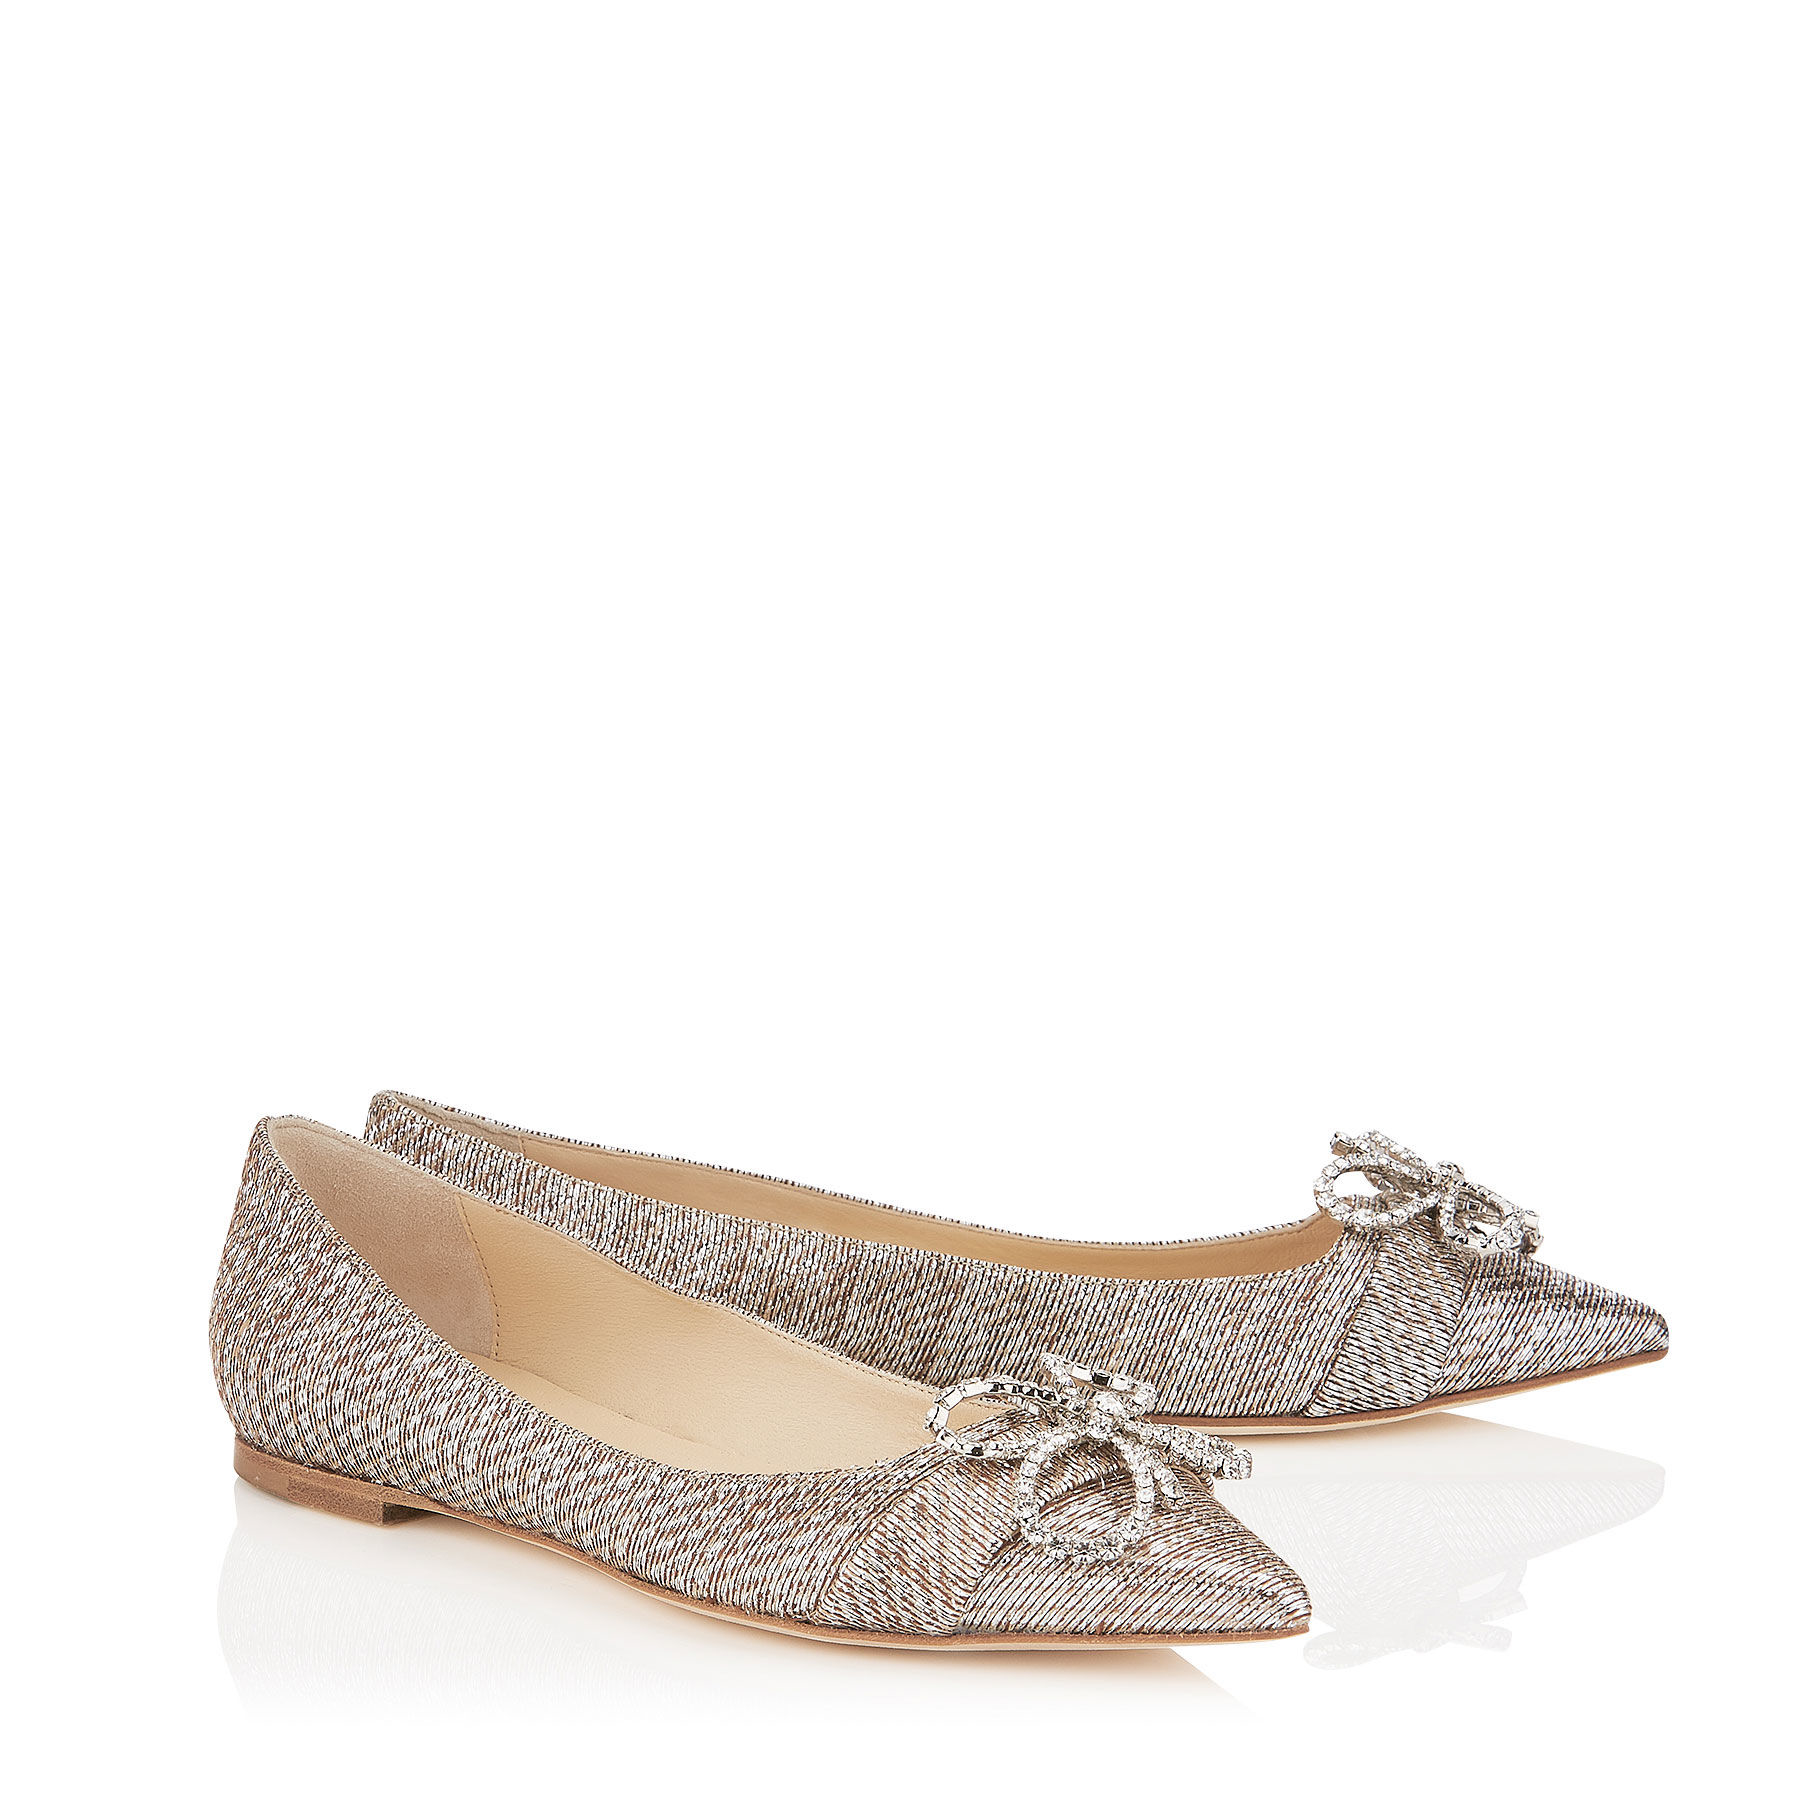 Jimmy Choo Metallic Woven Flats cheap sale 2014 unisex free shipping best sale cheap outlet store cheap sale wiki discount pay with paypal 44oSxkOU